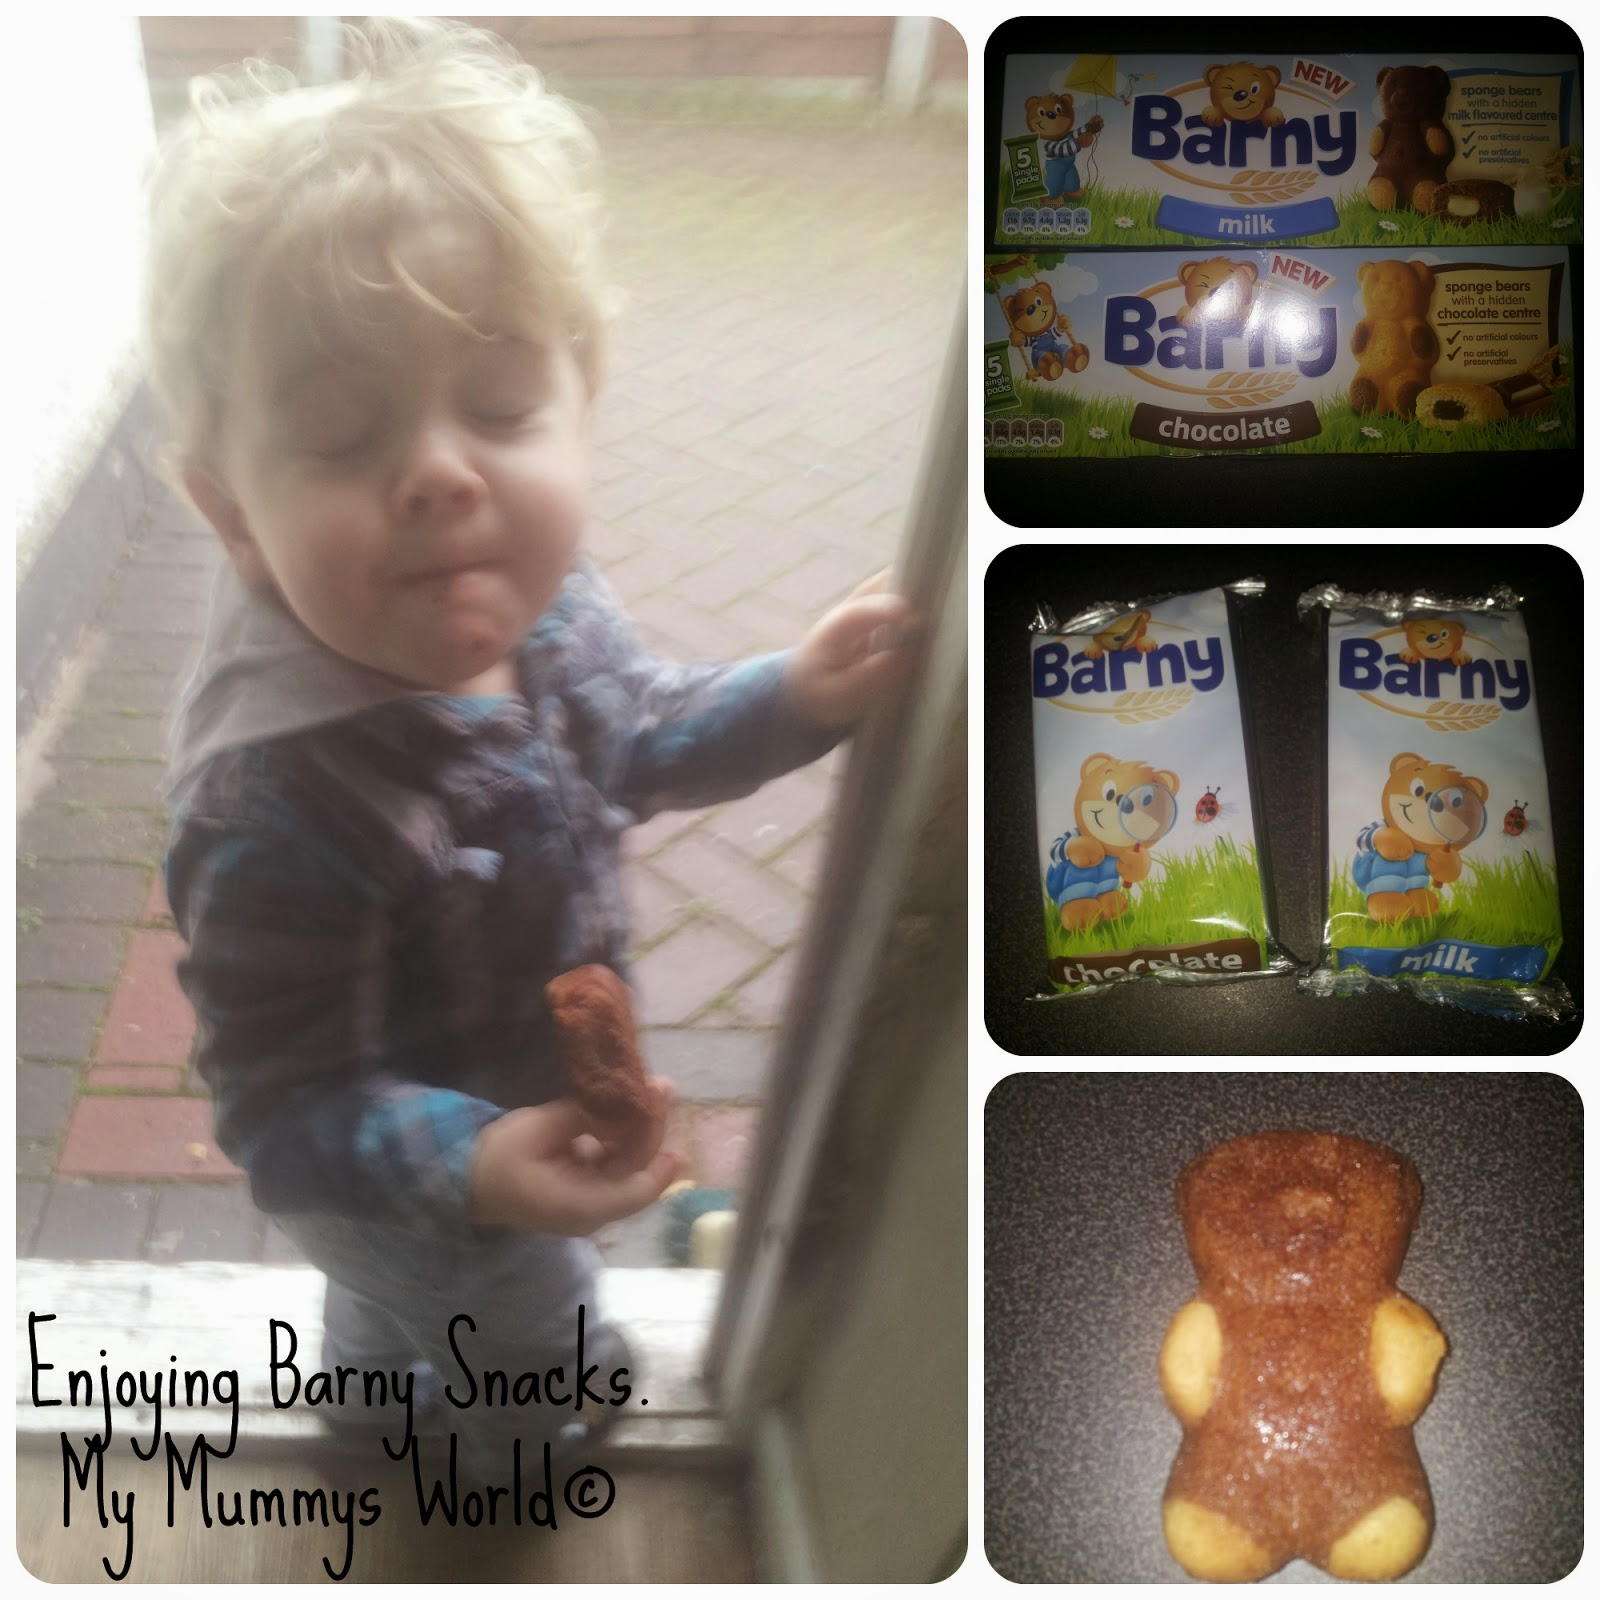 Enjoying Barny Snacks My Mummys World©